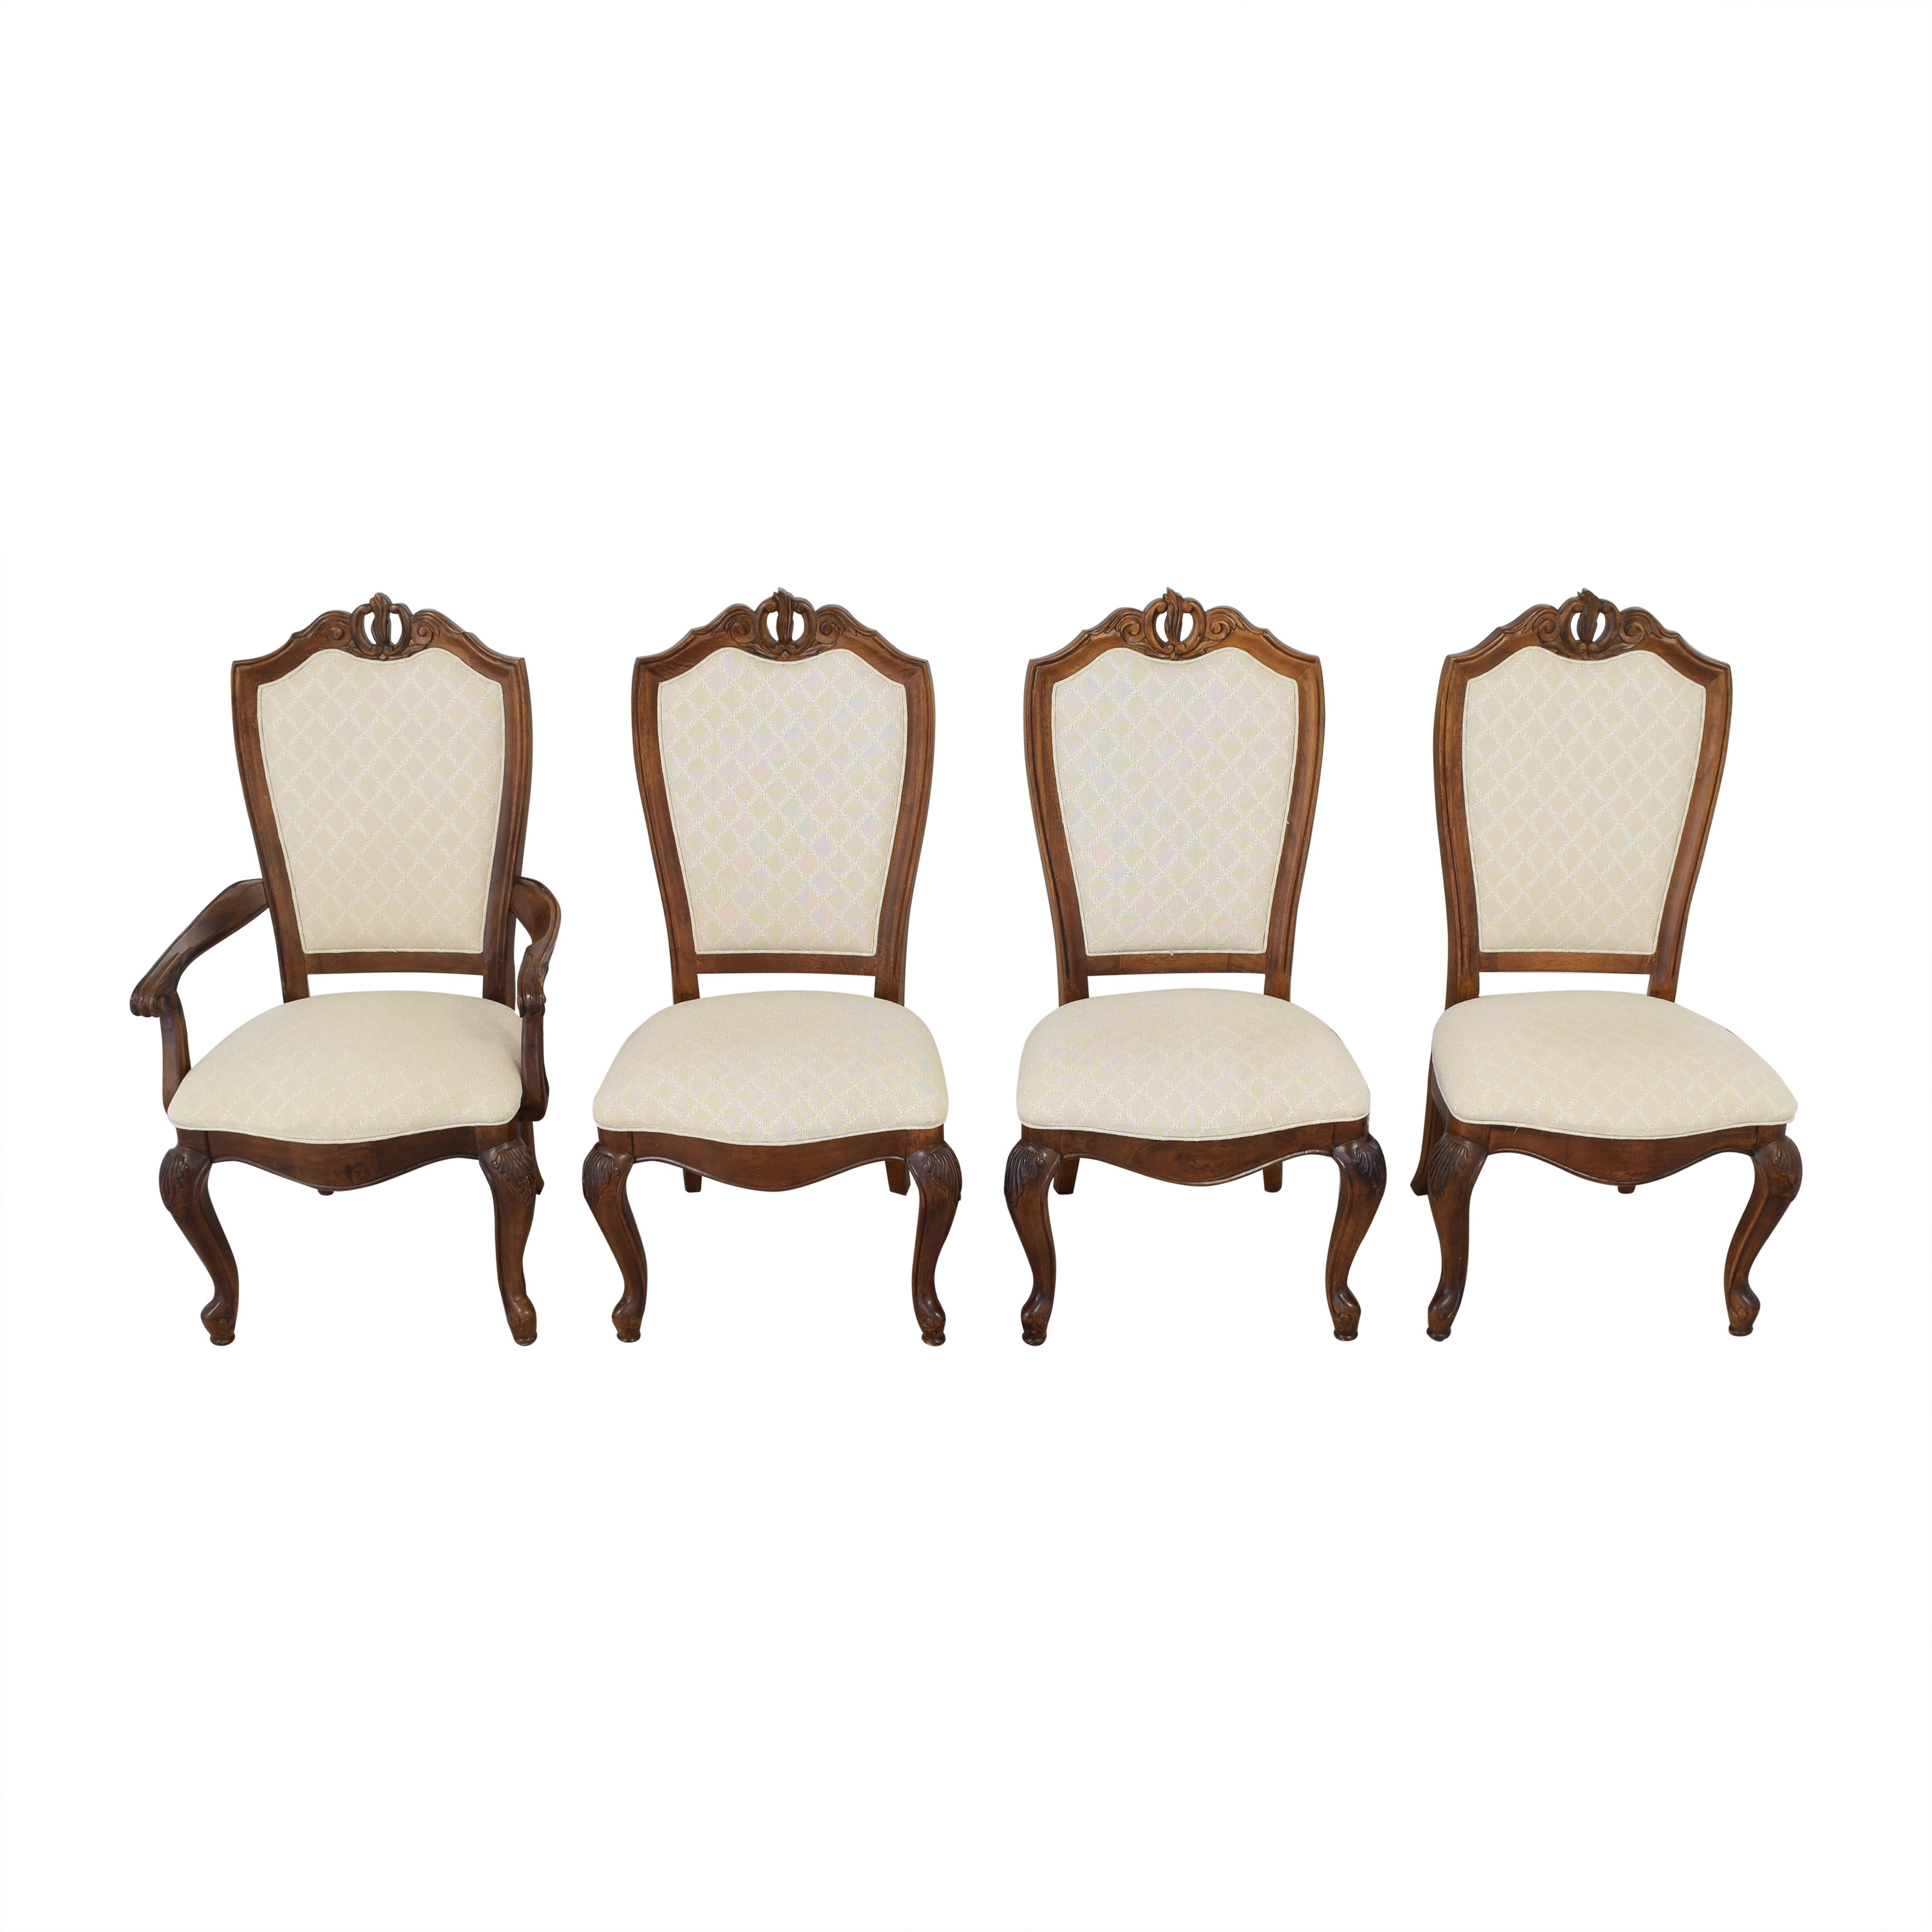 American Drew Bob Mackie for American Drew Dining Chairs brown & beige